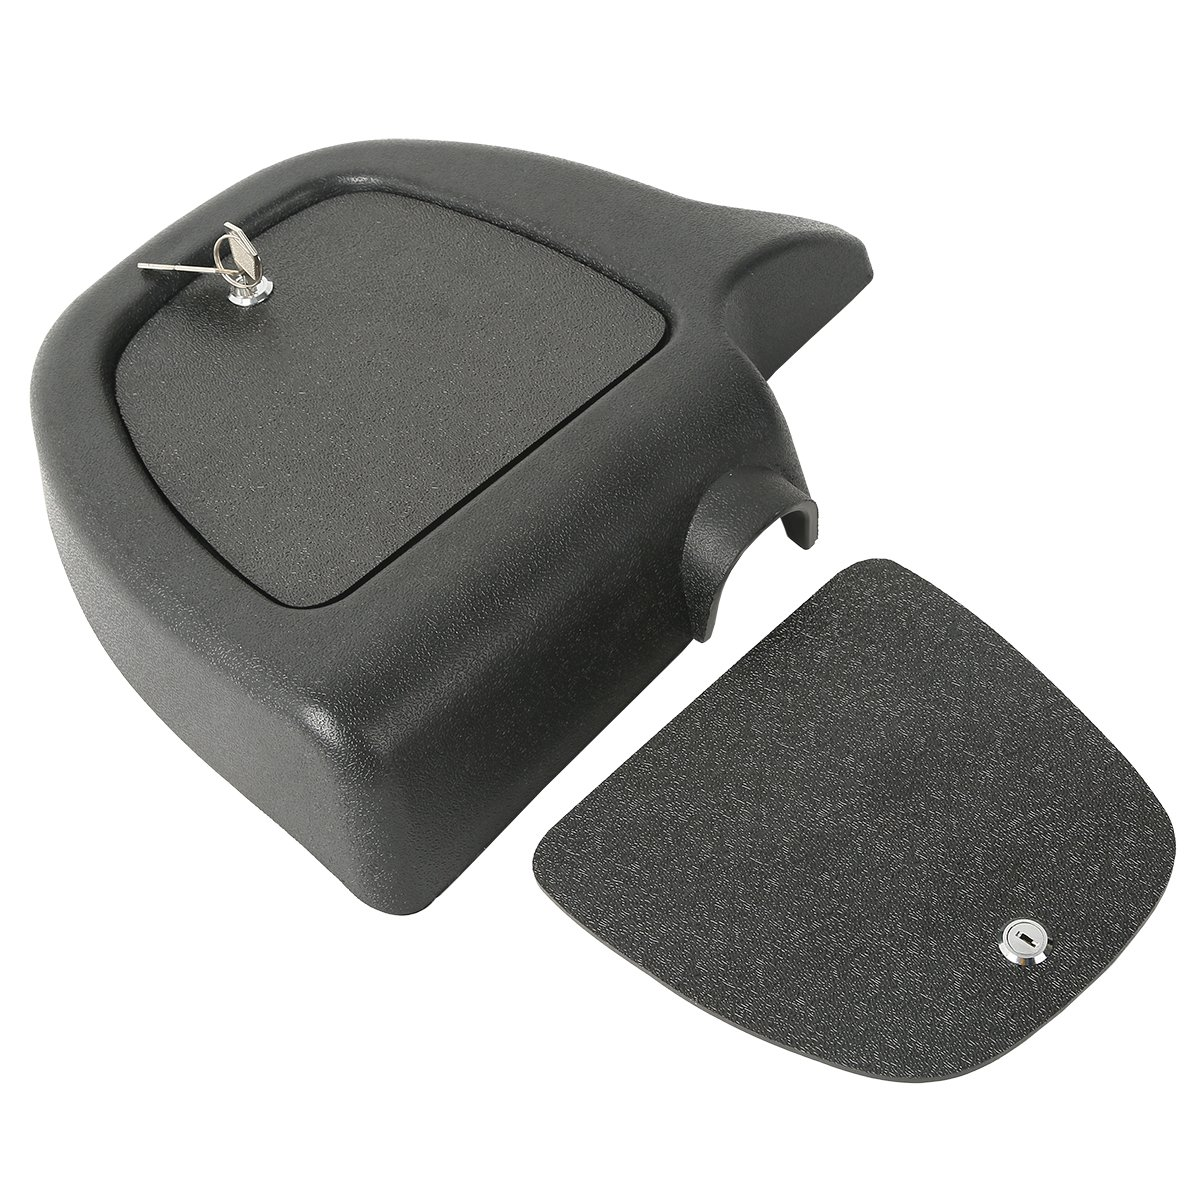 XMT-MOTO ABS Lower Fairing Locking Glovebox Doors For Harley Davidson Touring 2005-2013(Replaces OEM part:58679-05, 58681-05)